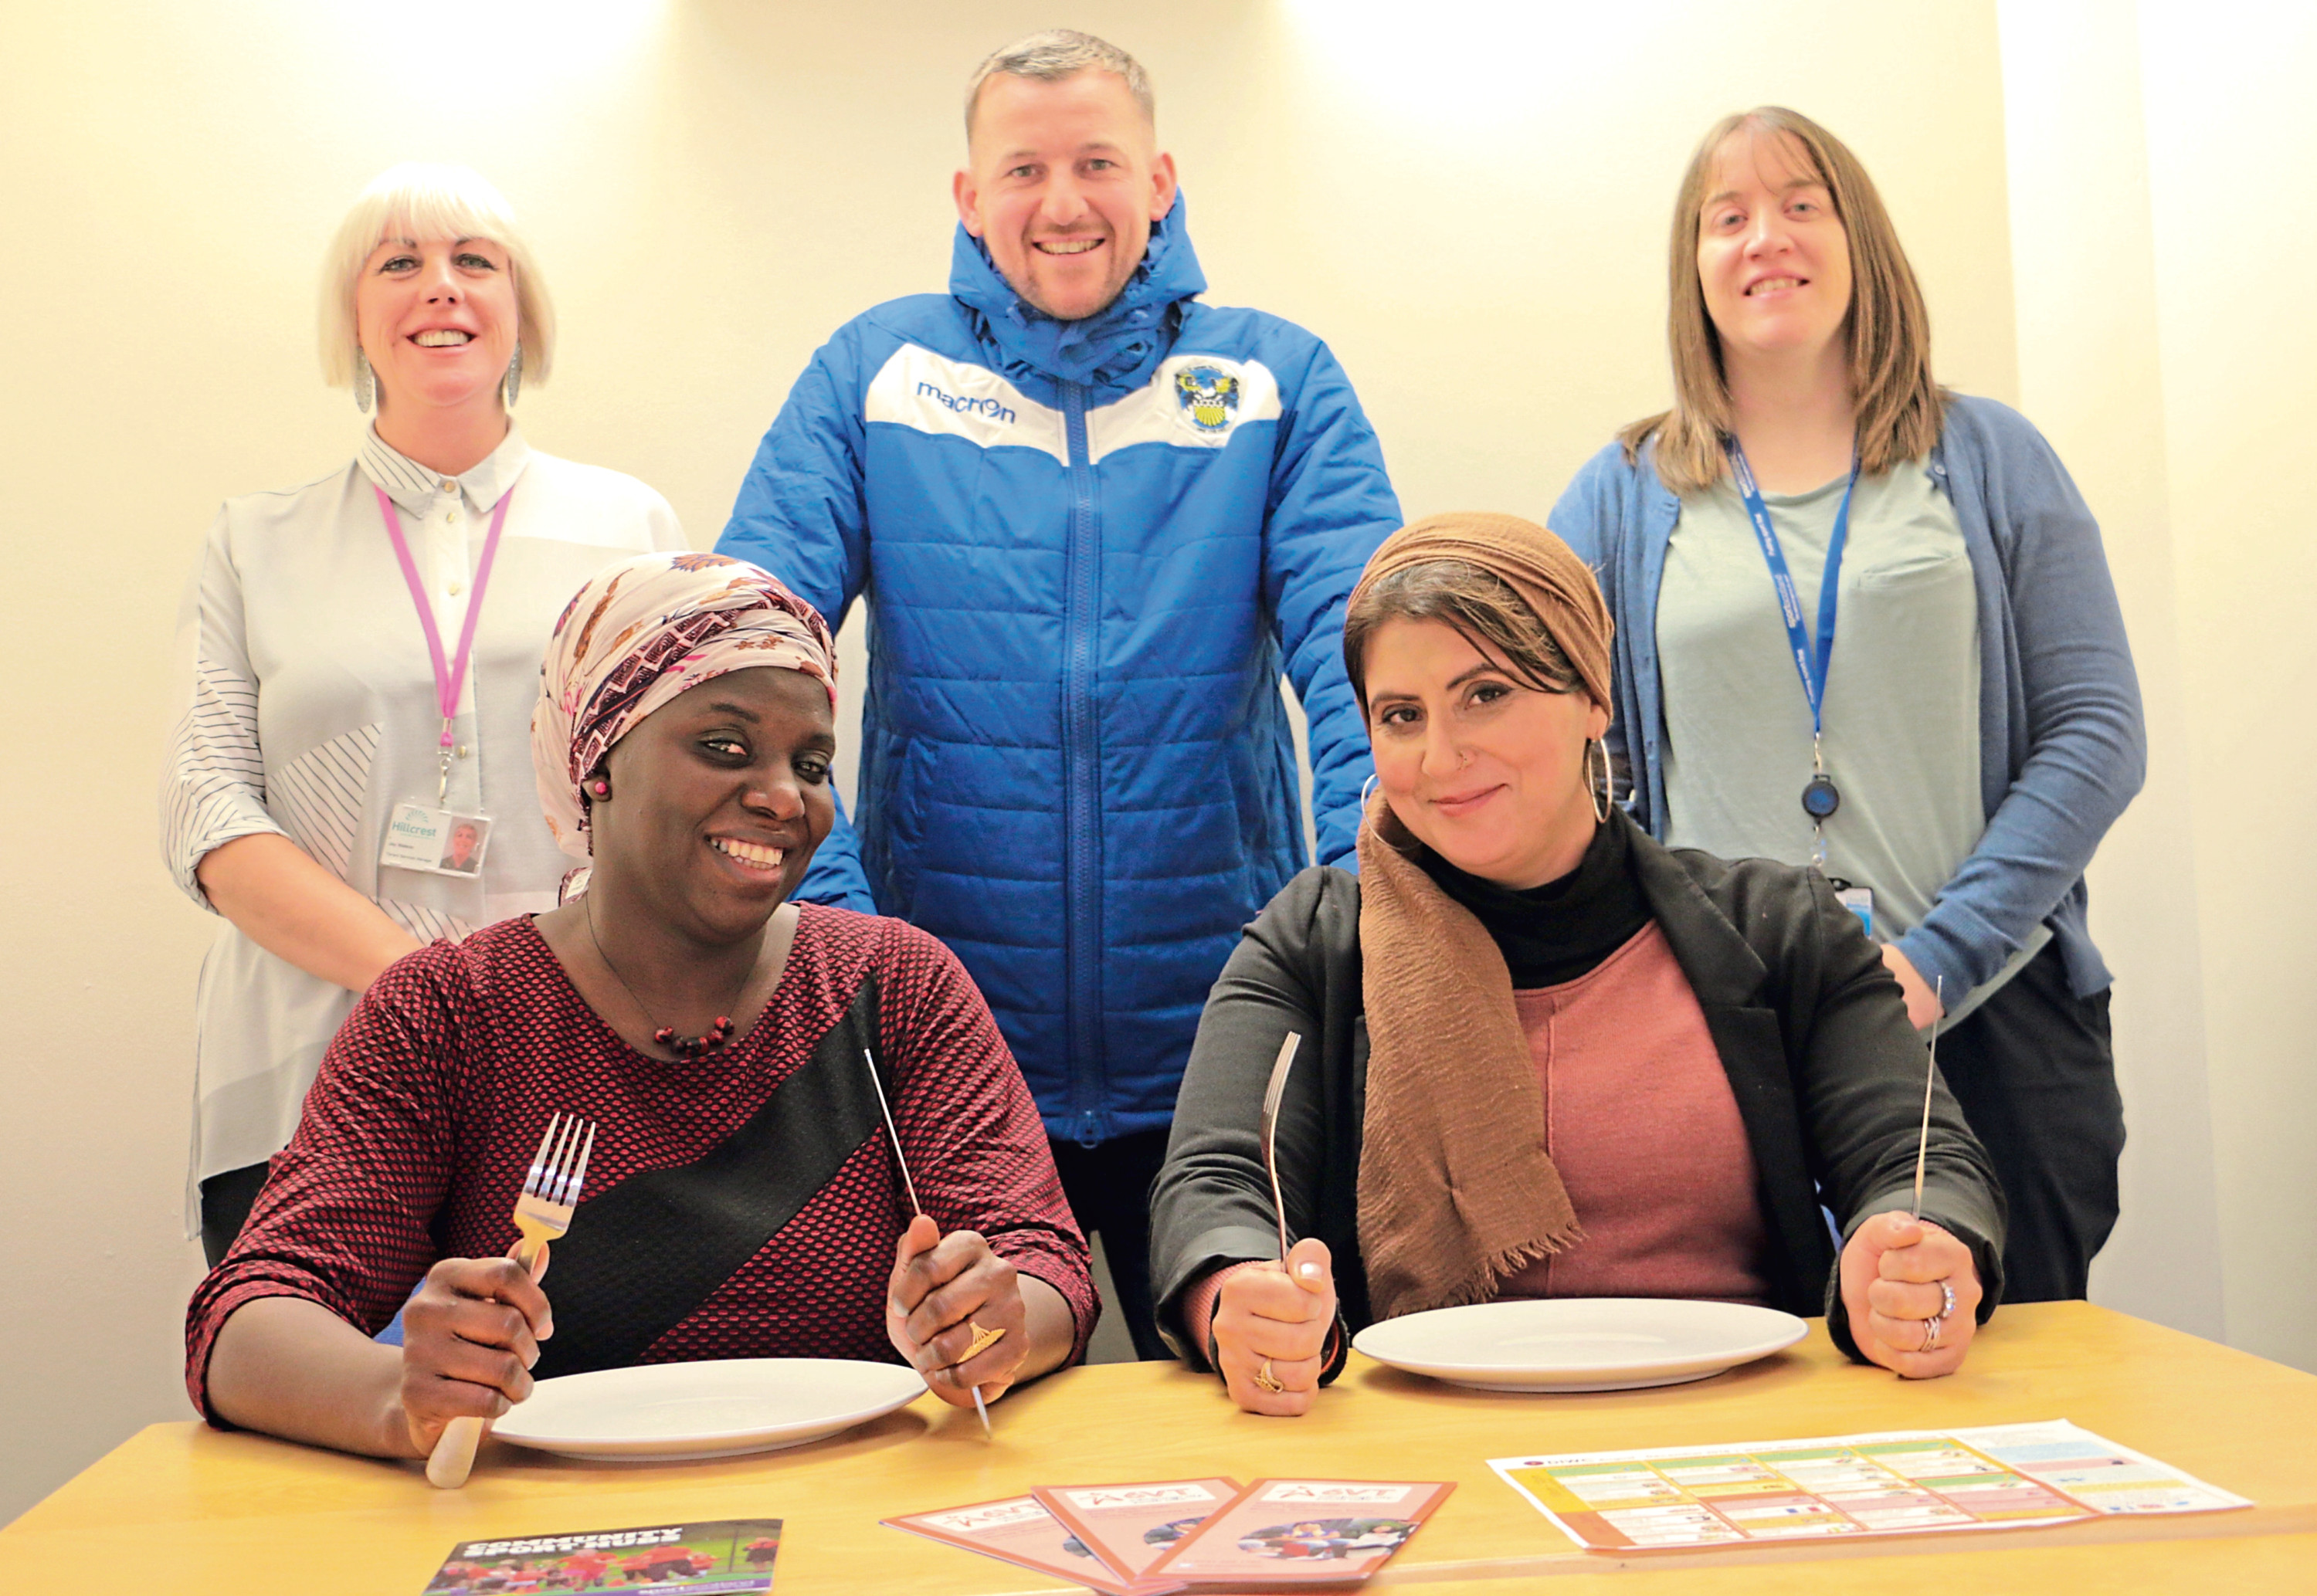 Picture shows, back row, from left: Hillcrest tenancy services manager Joy Watson, Fairfield project officer John Cairney and sports hub officer Alison Mackenzie. Front: DIWC project workers Diaré Drammeh and Fatima Ramzan.